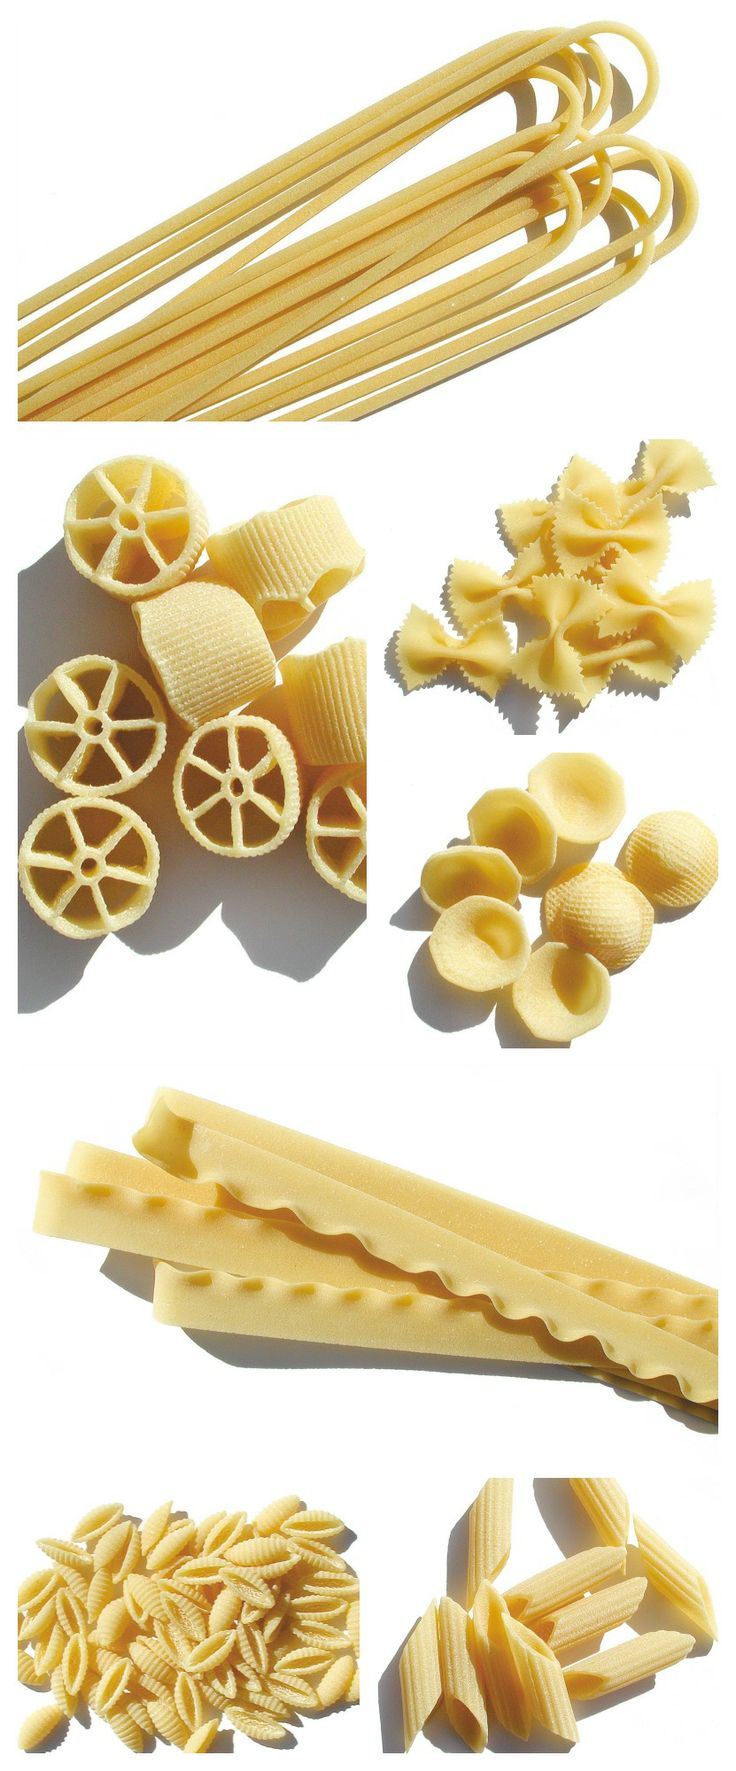 The Cavalieris are #Pasta-makers since five generations. Only the best is labelled as #Cavalieri: highly-selected flours from ancient #grain varieties grown between #Puglia and #Basilicata, pure water and the famous 'metodo delicato' production process come together with ancient bronze die plates to become an high-quality product-or better-a first #quality #pasta with a signature! Taste the difference here: http://www.gourmetitaly.com/en/search?q=cavalieri&orderby=position&orderway=desc